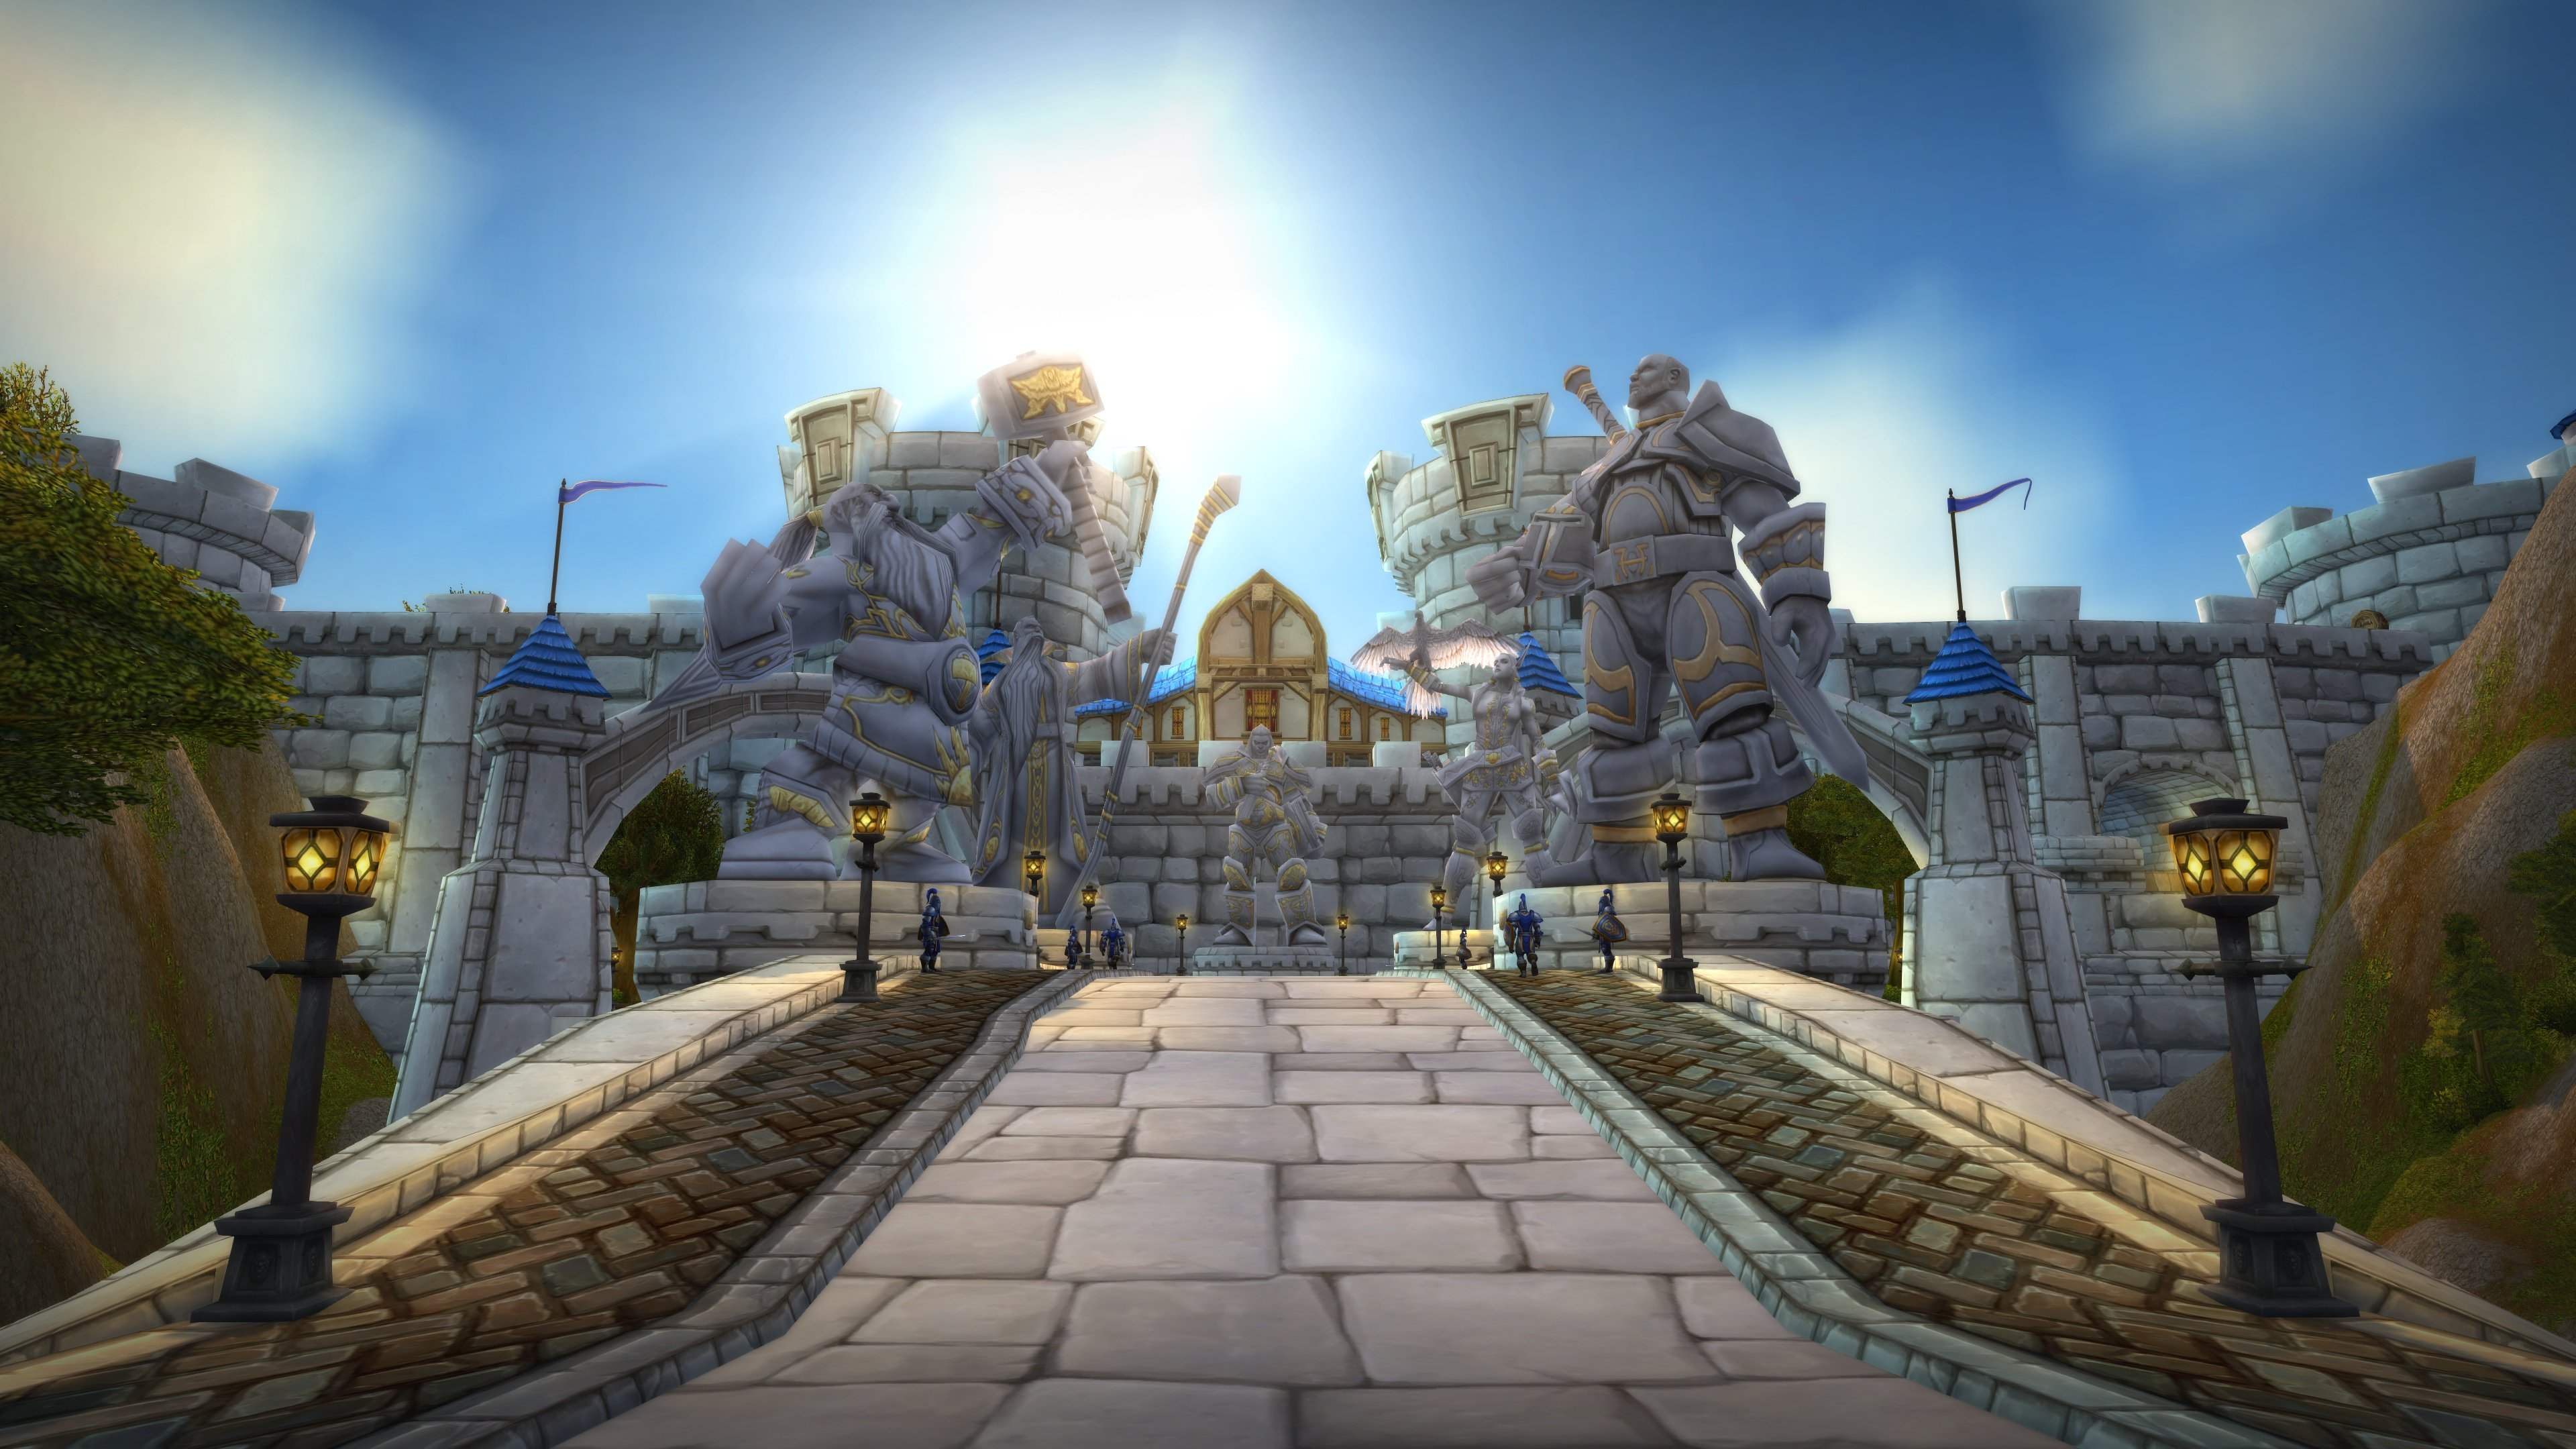 Blizzard releases 4K World of Warcraft backgrounds for new and classic areas screenshot